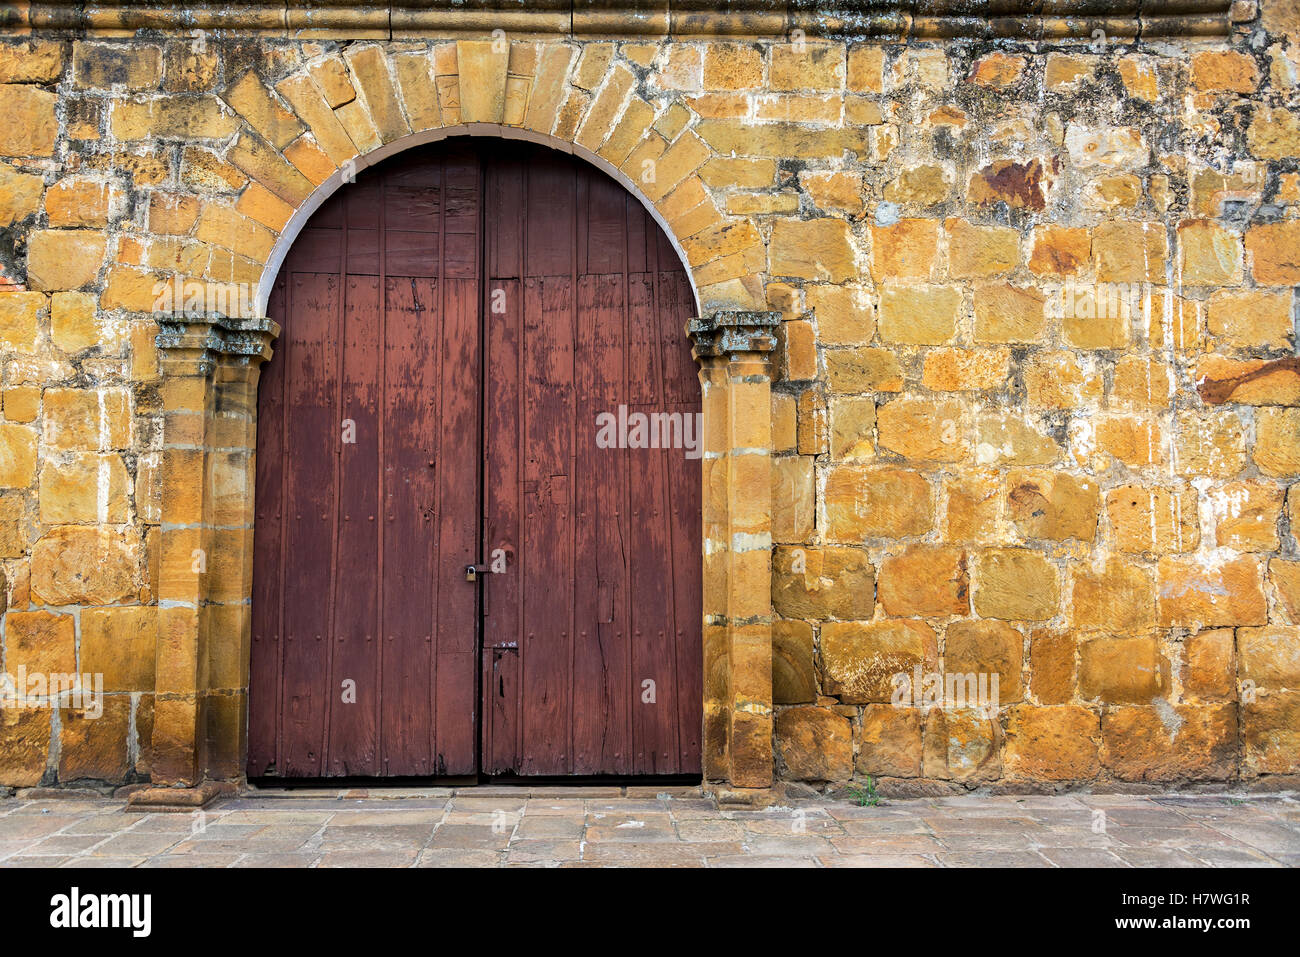 Entrance to San Roque chapel in the small town of Valle de San Jose, Colombia - Stock Image